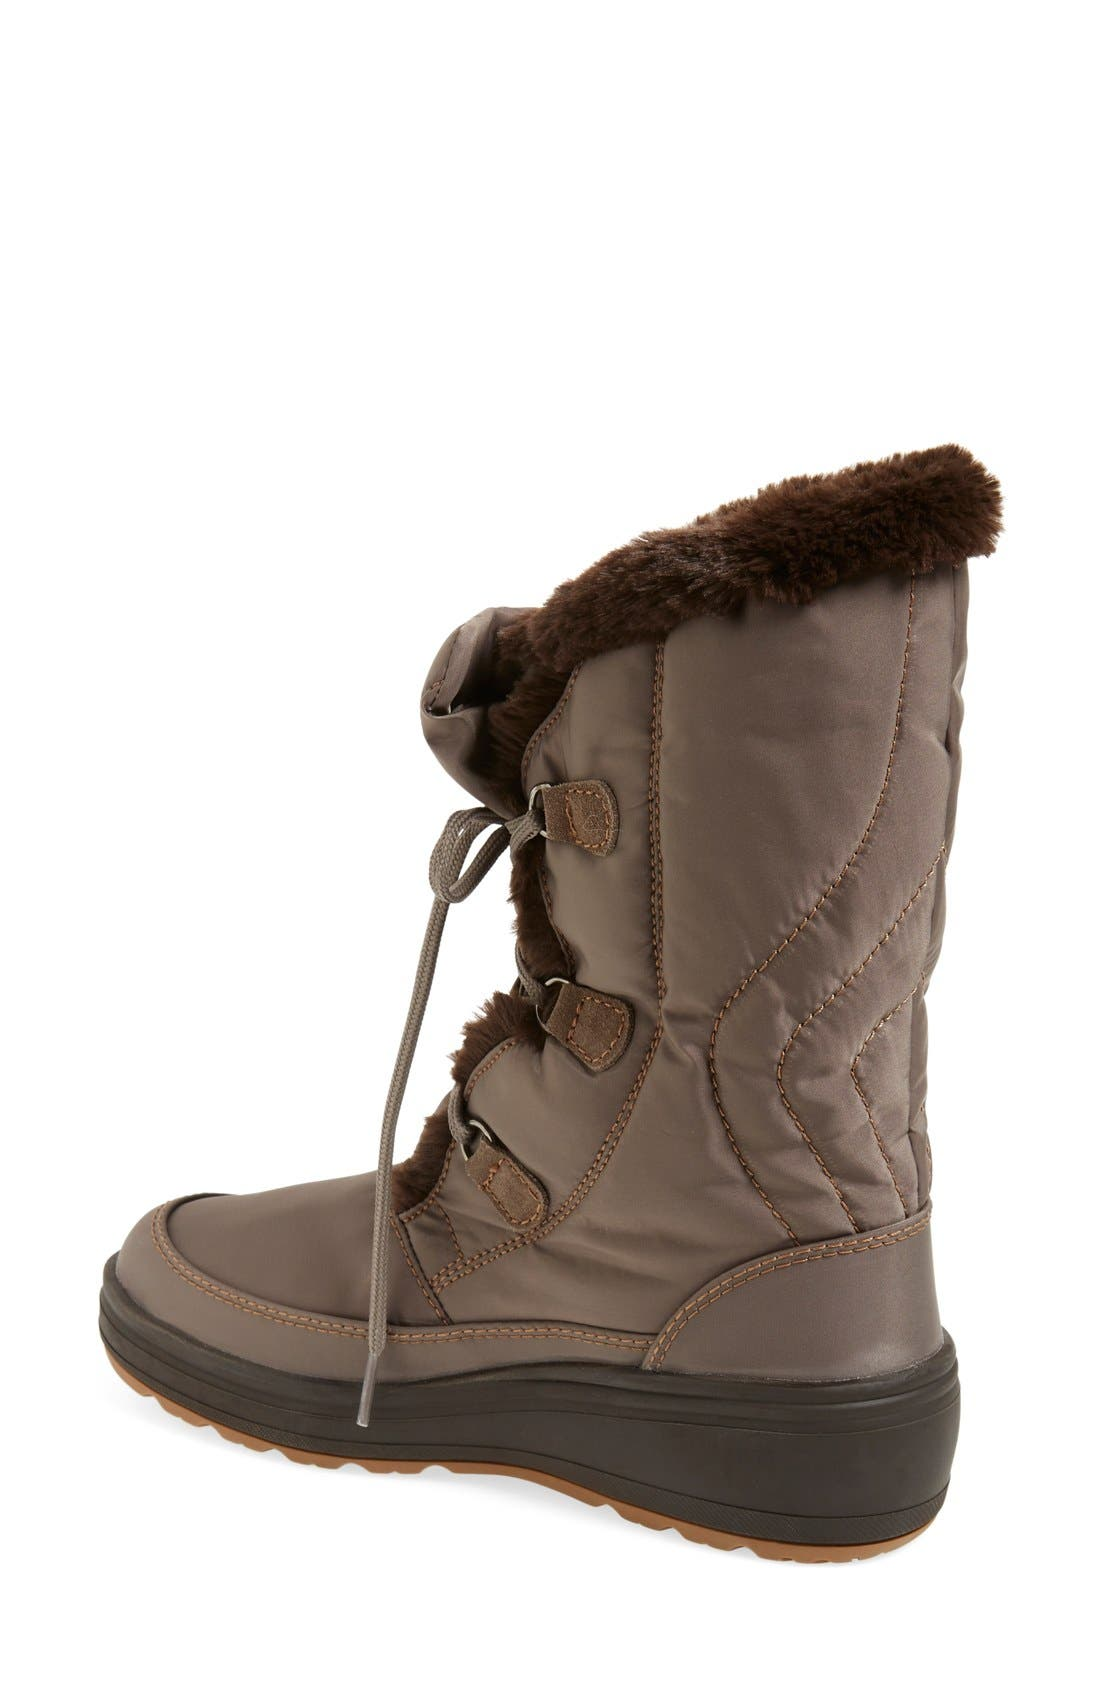 Alternate Image 2  - Pajar 'Marcie' Waterproof Snow Boot with Faux Fur Collar (Women)